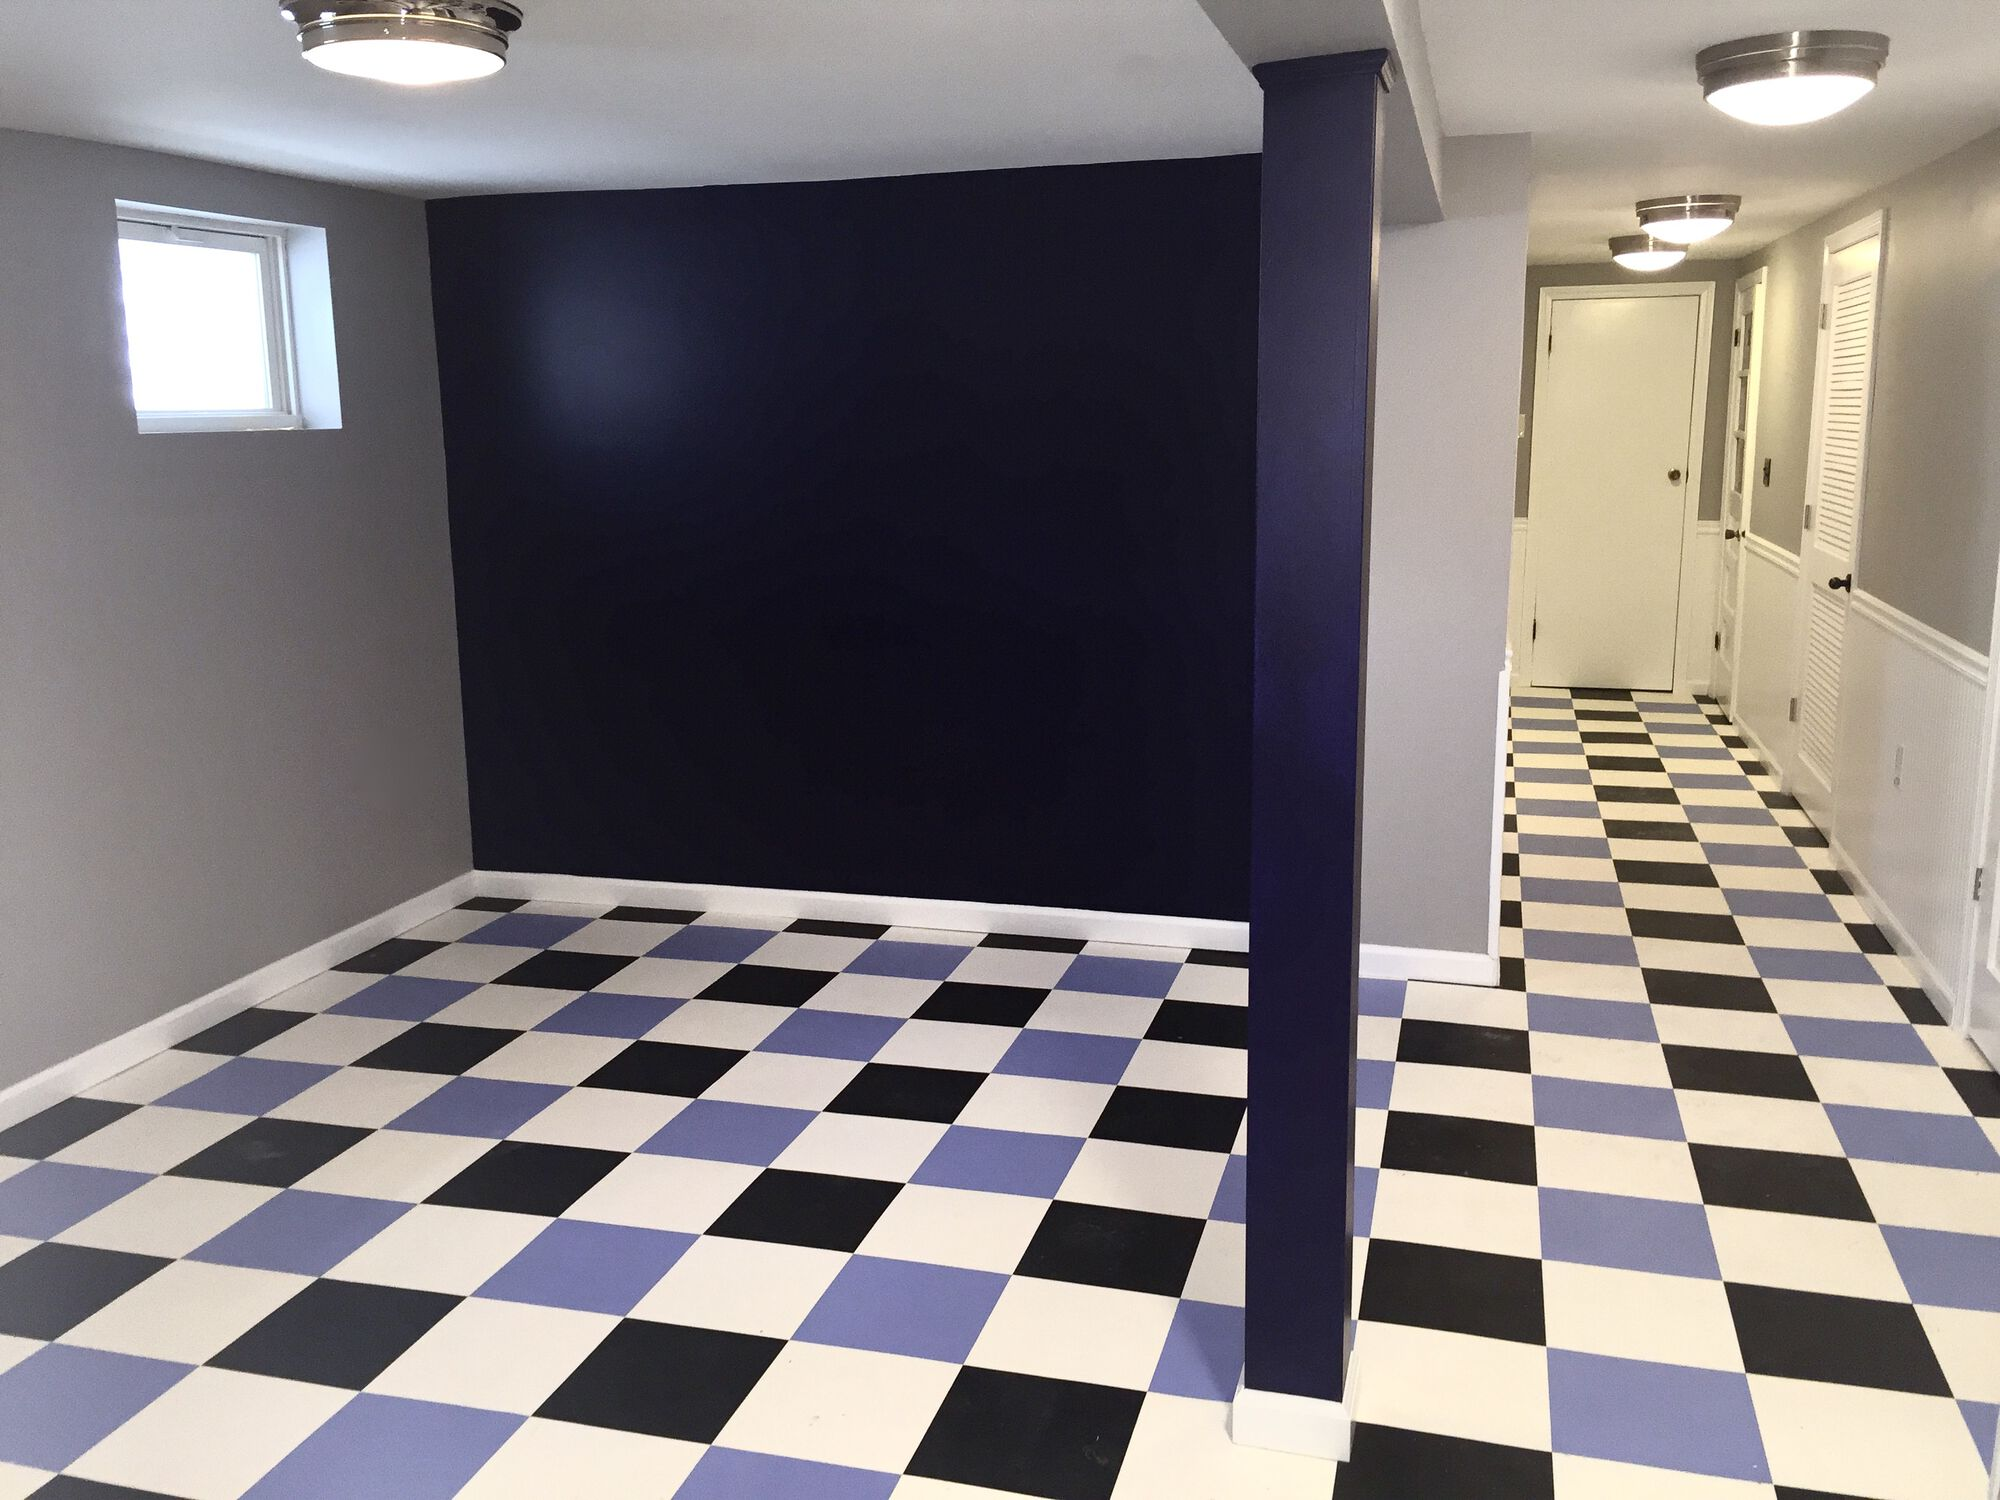 Basement Finishing with Vinyl Floating Floor, TV Family Room, Laundry and Storage in Jersey City, Hudson County NJ